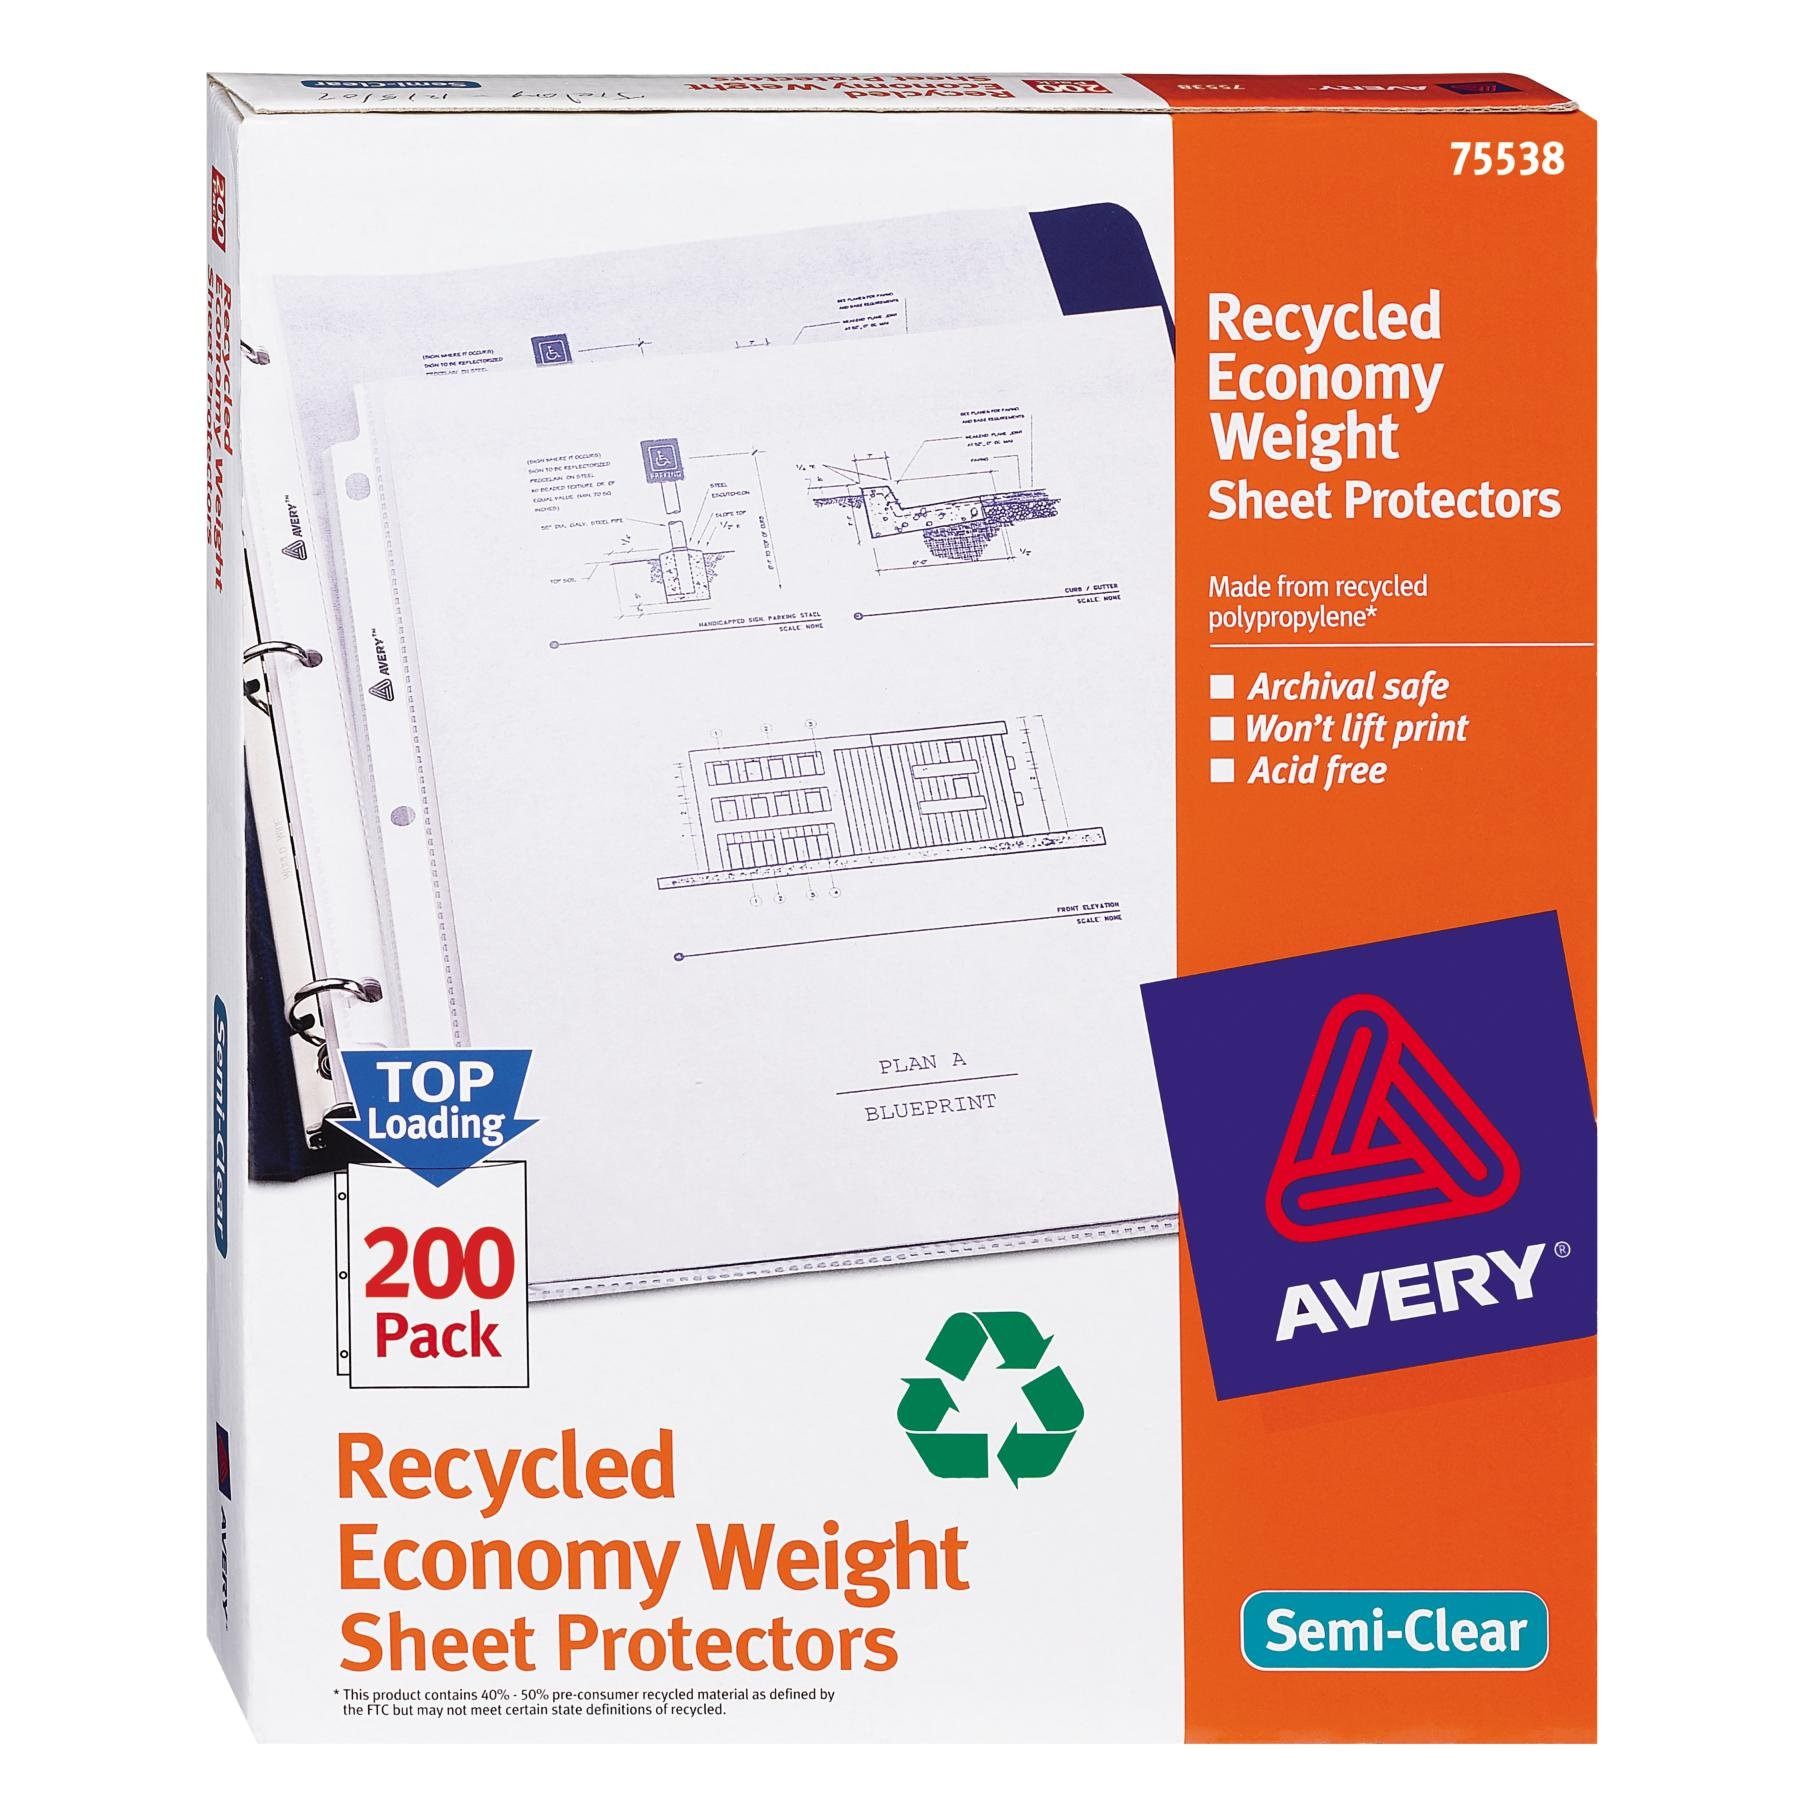 Avery Recycled Economy Weight Sheet Protectors, Top-Load, 8.5 x 11 Inches, Box of 200 (75538)